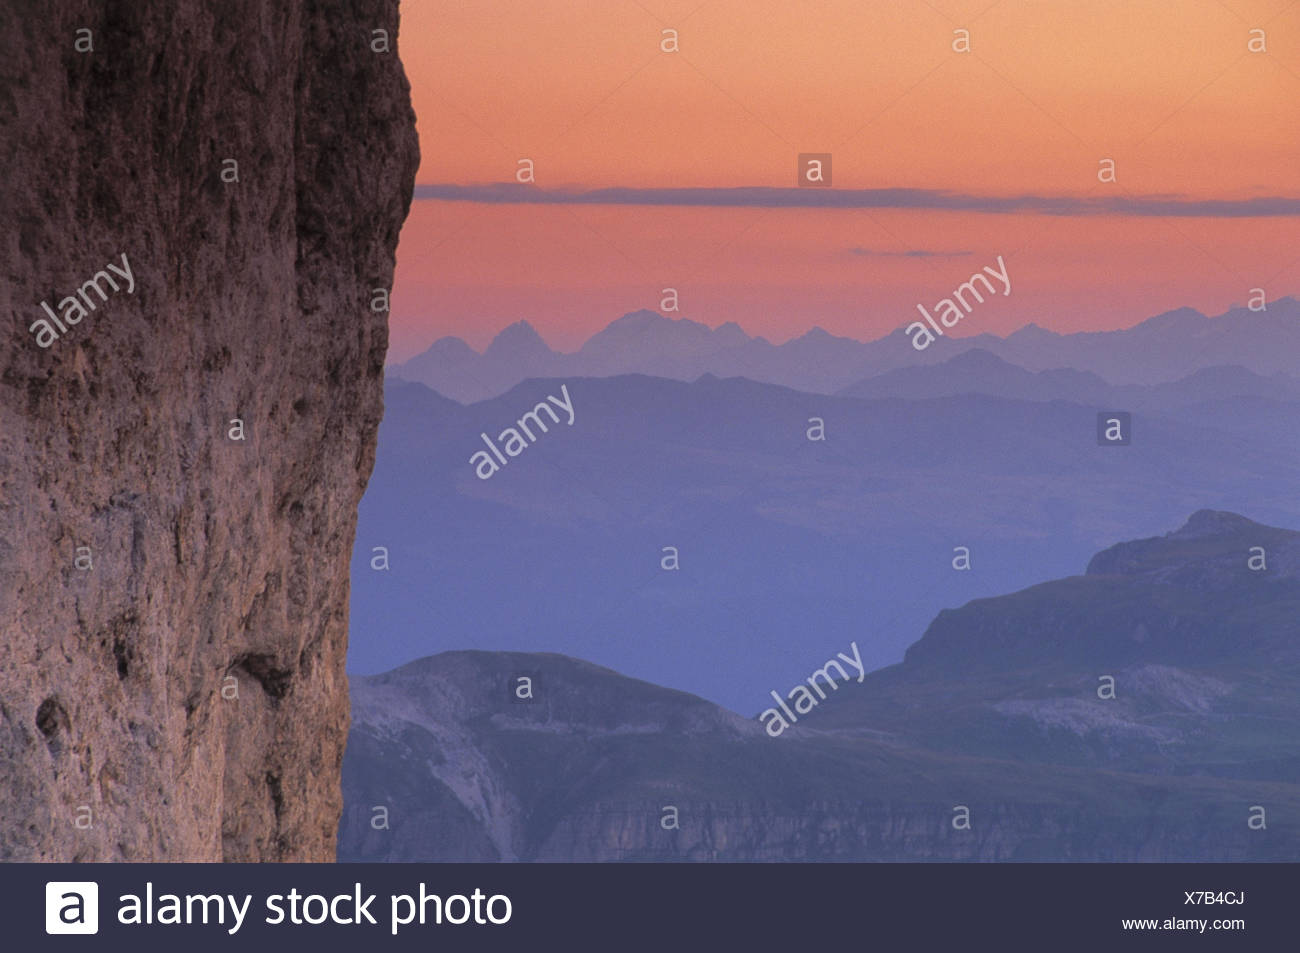 Italy, South Tirol, the Dolomites, rose garden, king Laurin wall, detail, view, mountaintop, evening mood Europe, Southern Europe, Dolomiti, cliff face, mountains, mountains, summits, mountain summits, scenery, view, afterglow, evening, tuning - Stock Image